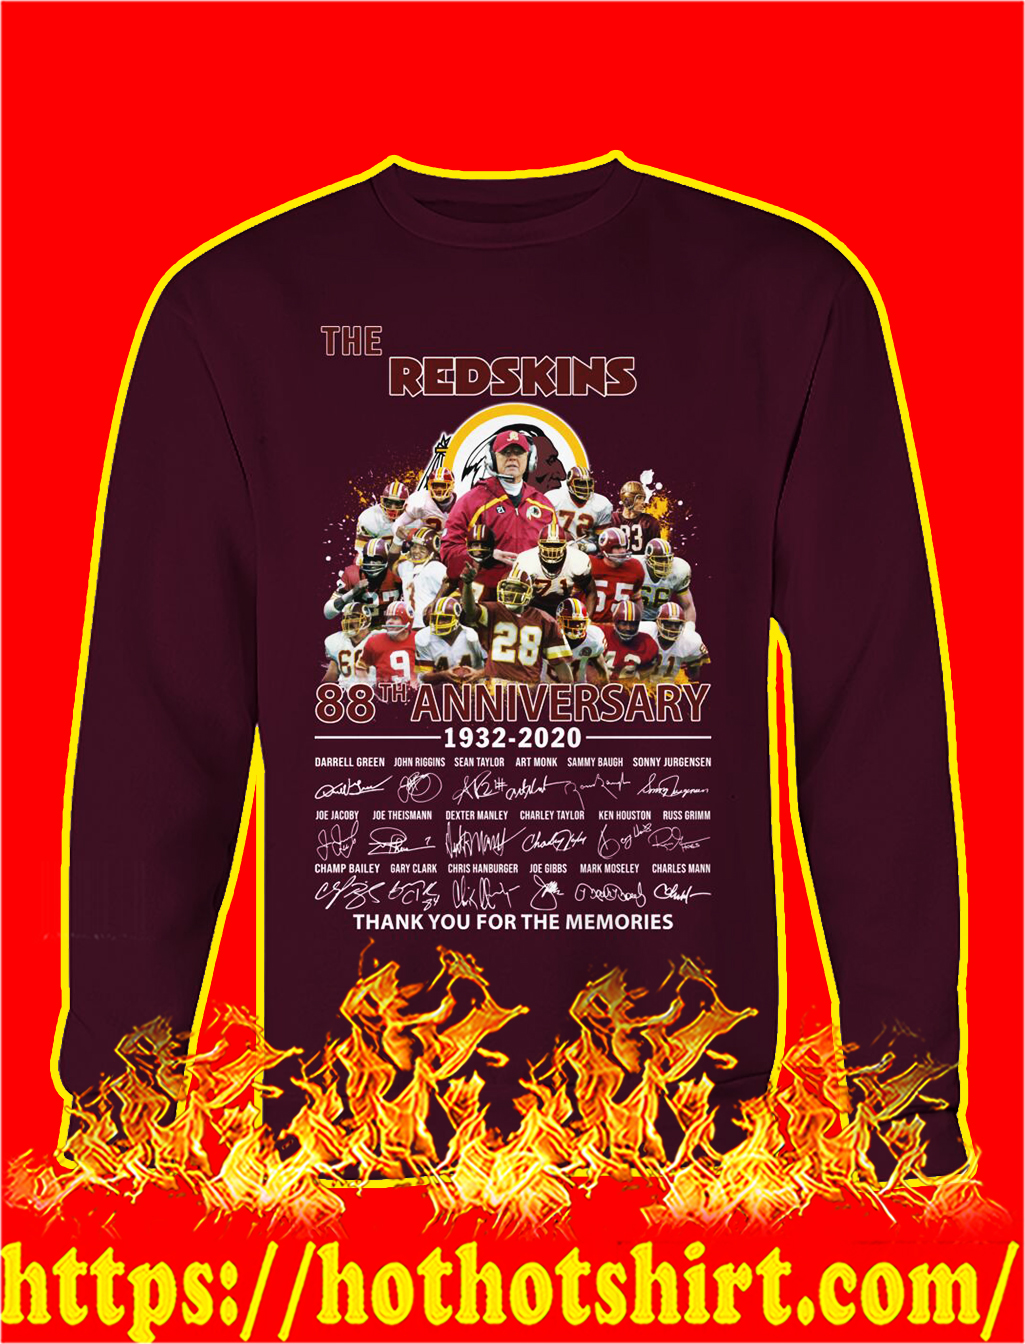 The redskins 88th anniversary thank you for the memories sweatshirt